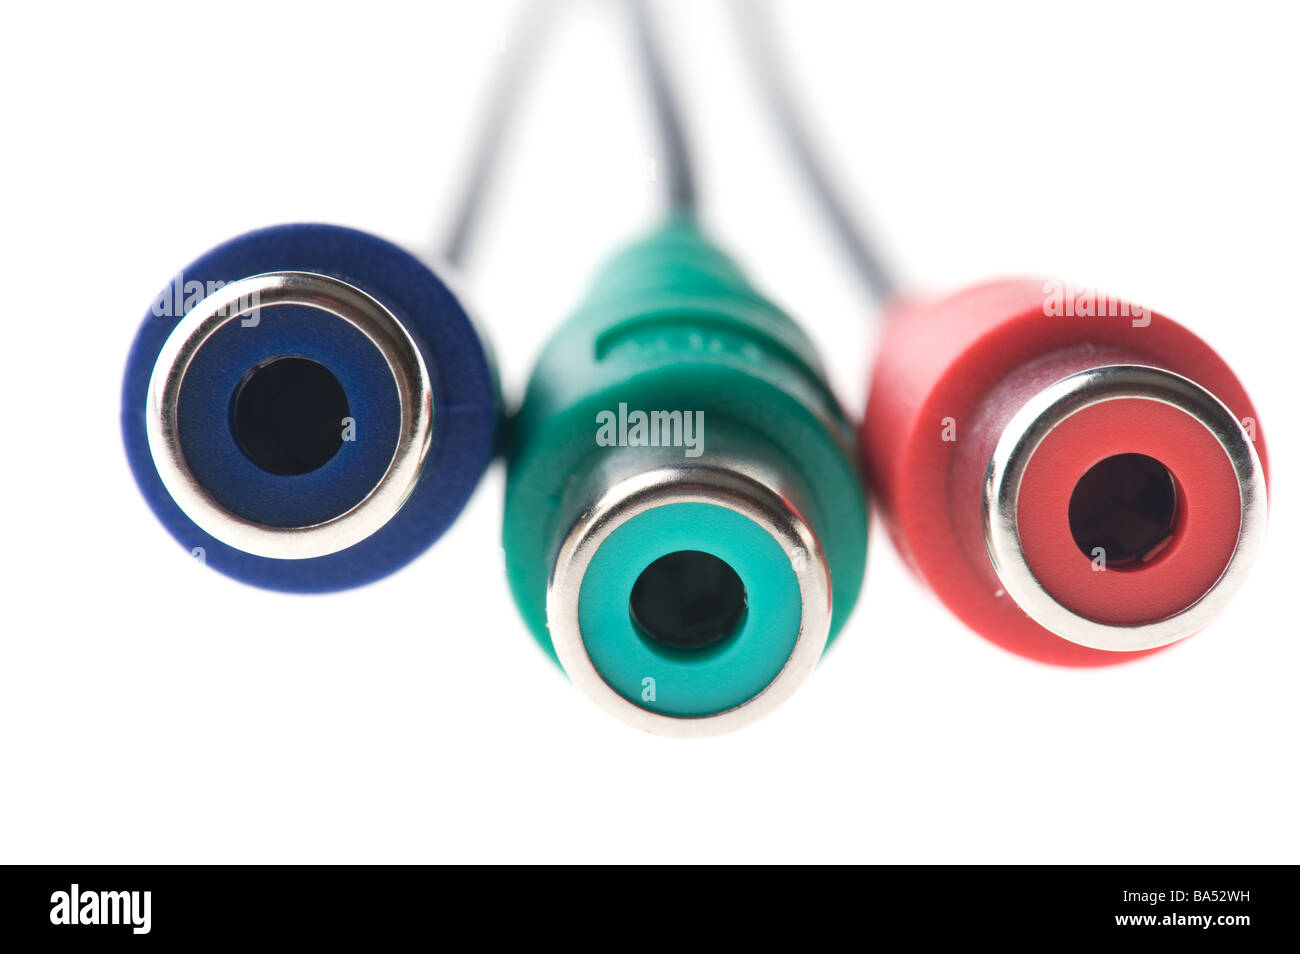 Rca Cable Stock Photos & Rca Cable Stock Images - Alamy